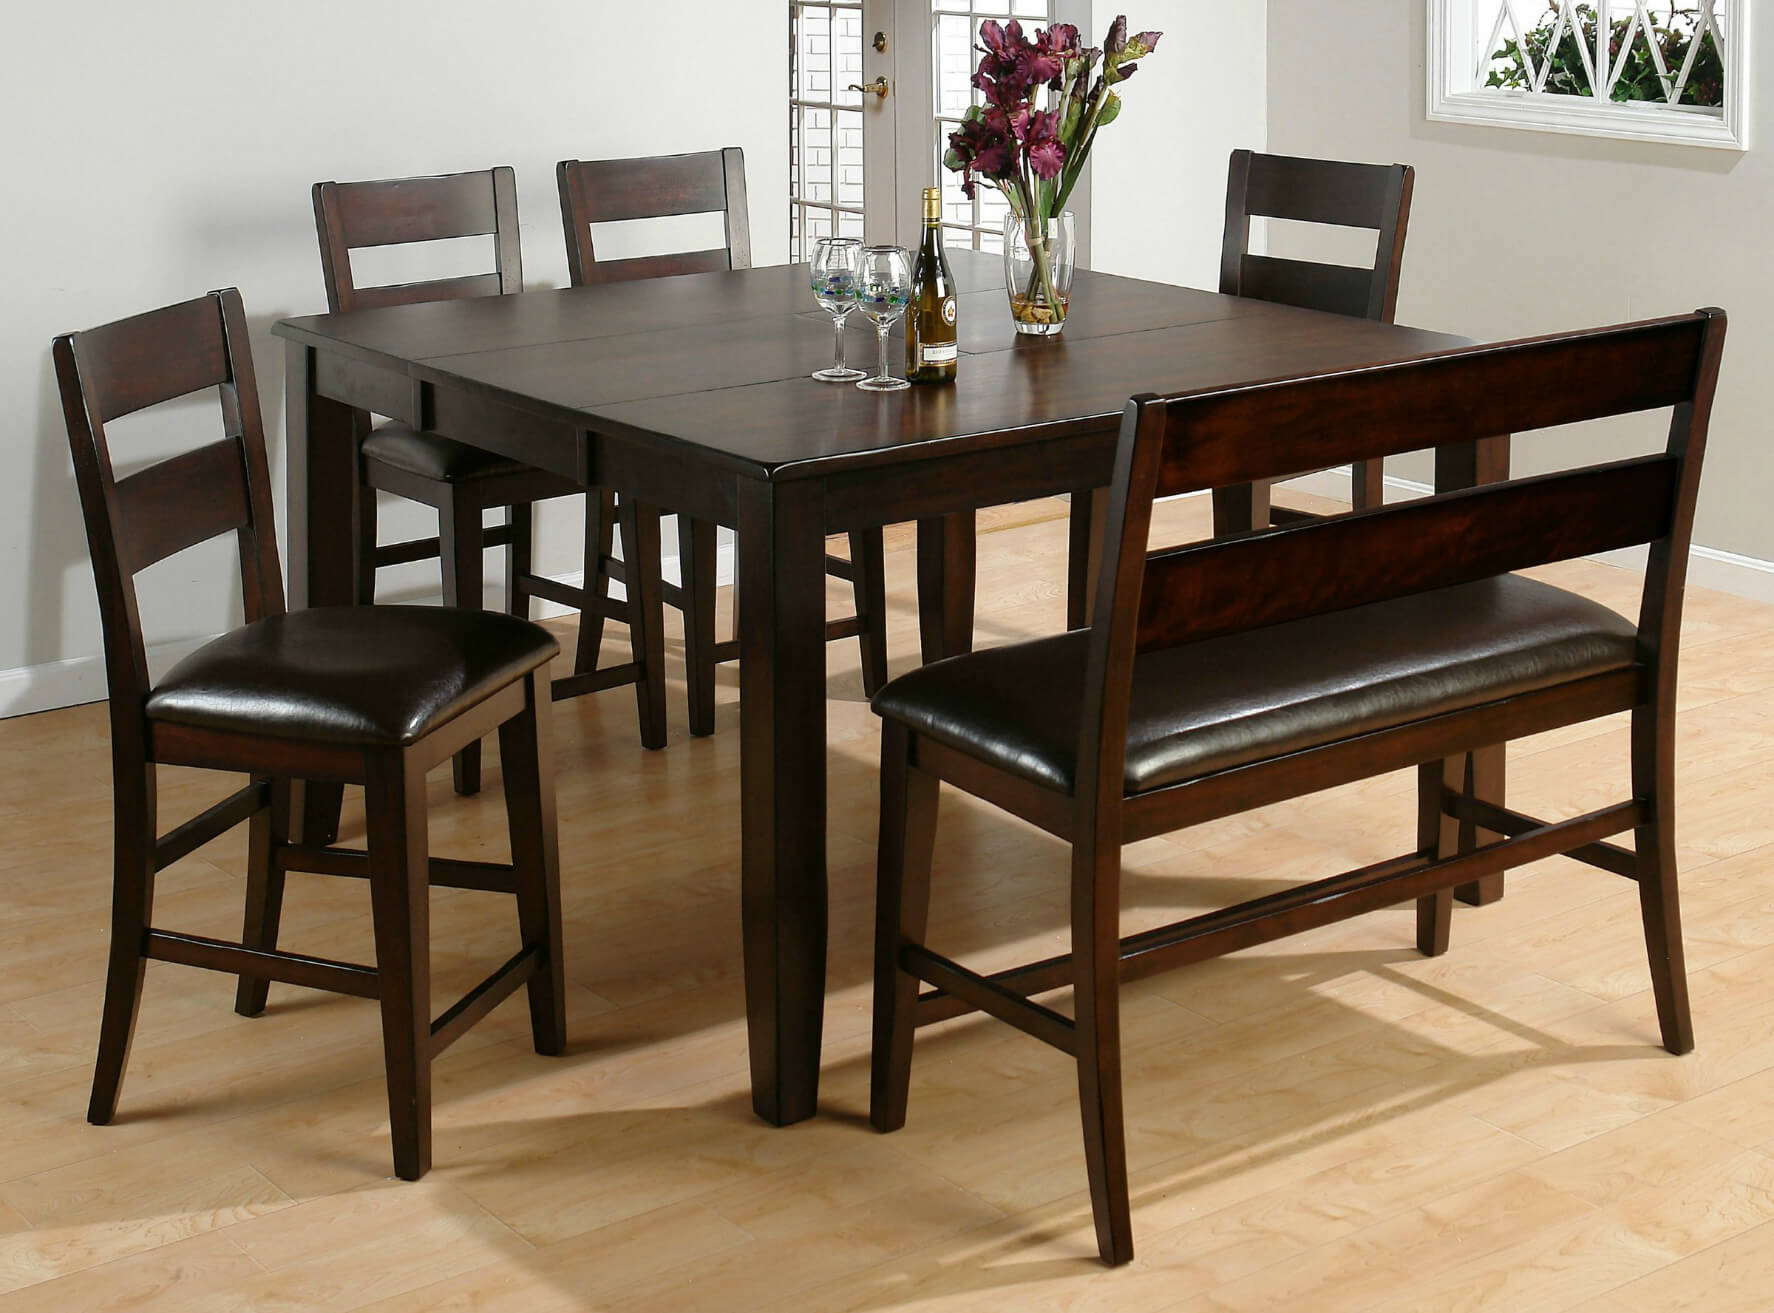 dining room sets bench seating kitchen tables sets Here s a counter height square dining room table with bench Moreover the bench includes